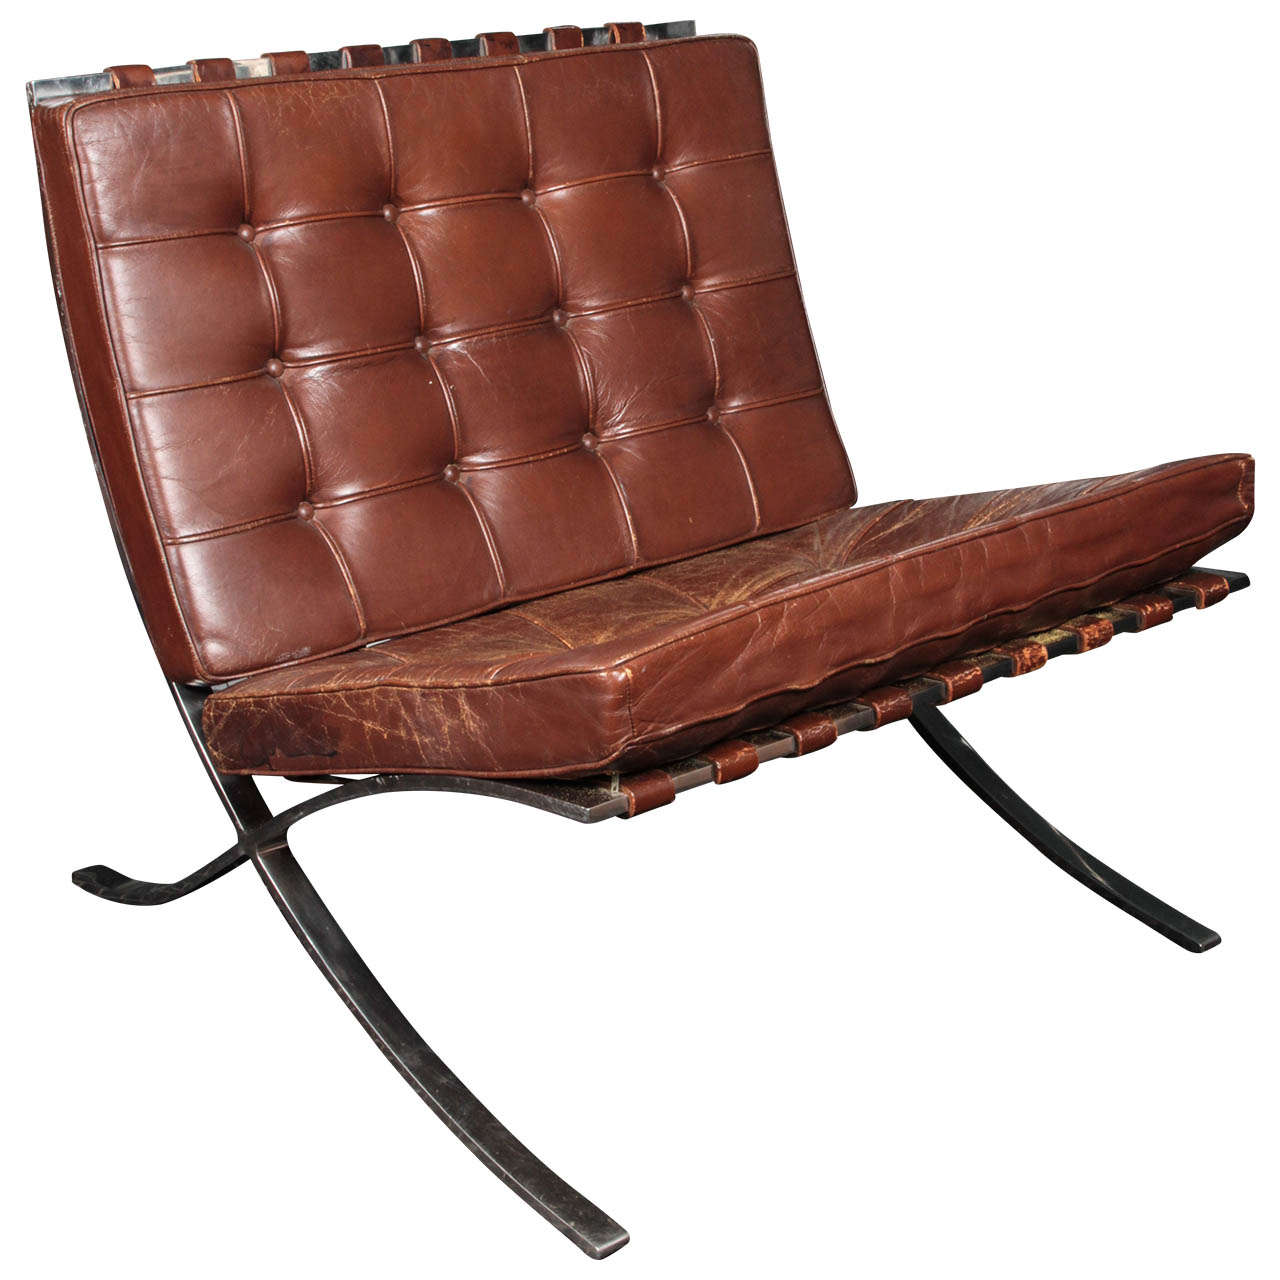 Brown Leather Barcelona Chair By Ludwig Mies Van Der Rohe For Knoll